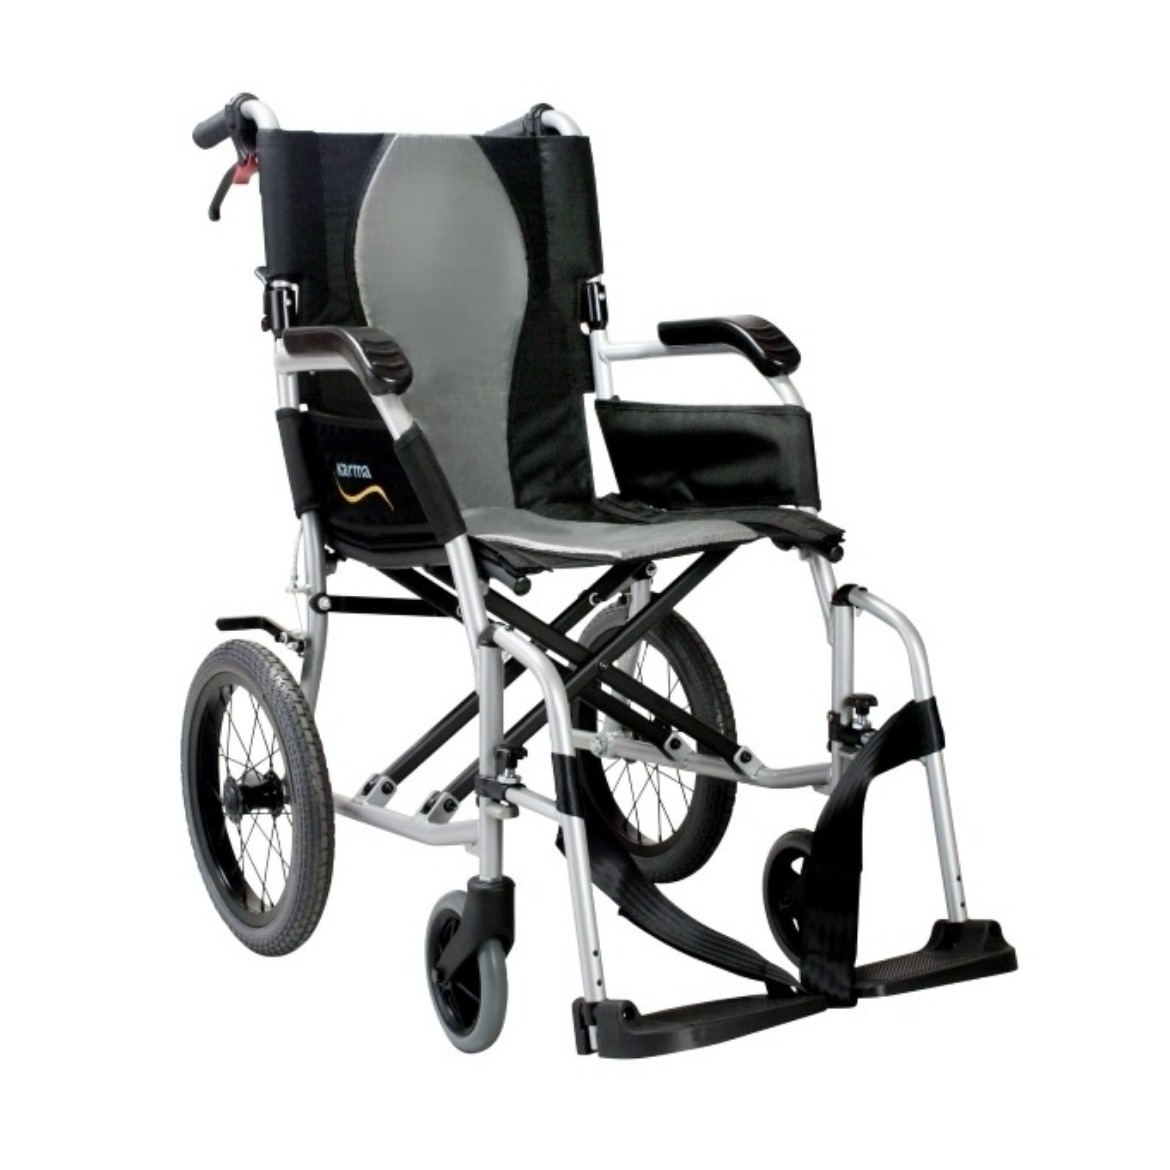 Ergo Lite 2 Ultralight Transit Wheelchair